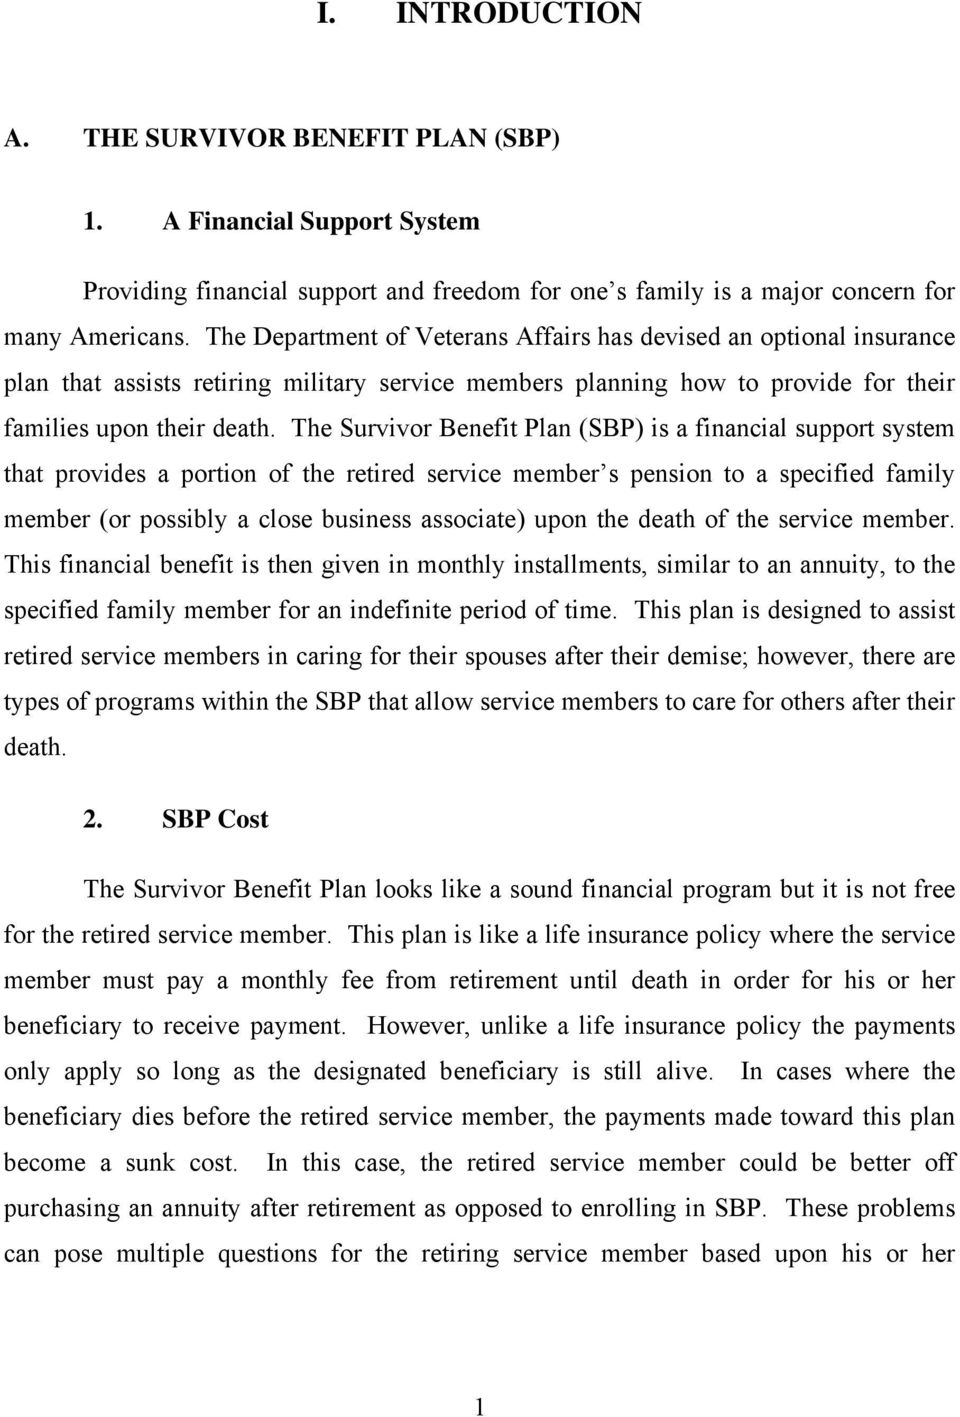 Th Survivor Bnfit Plan (SBP) is a financial support systm that provids a portion of th rtird srvic mmbr s pnsion to a spcifid family mmbr (or possibly a clos businss associat) upon th dath of th